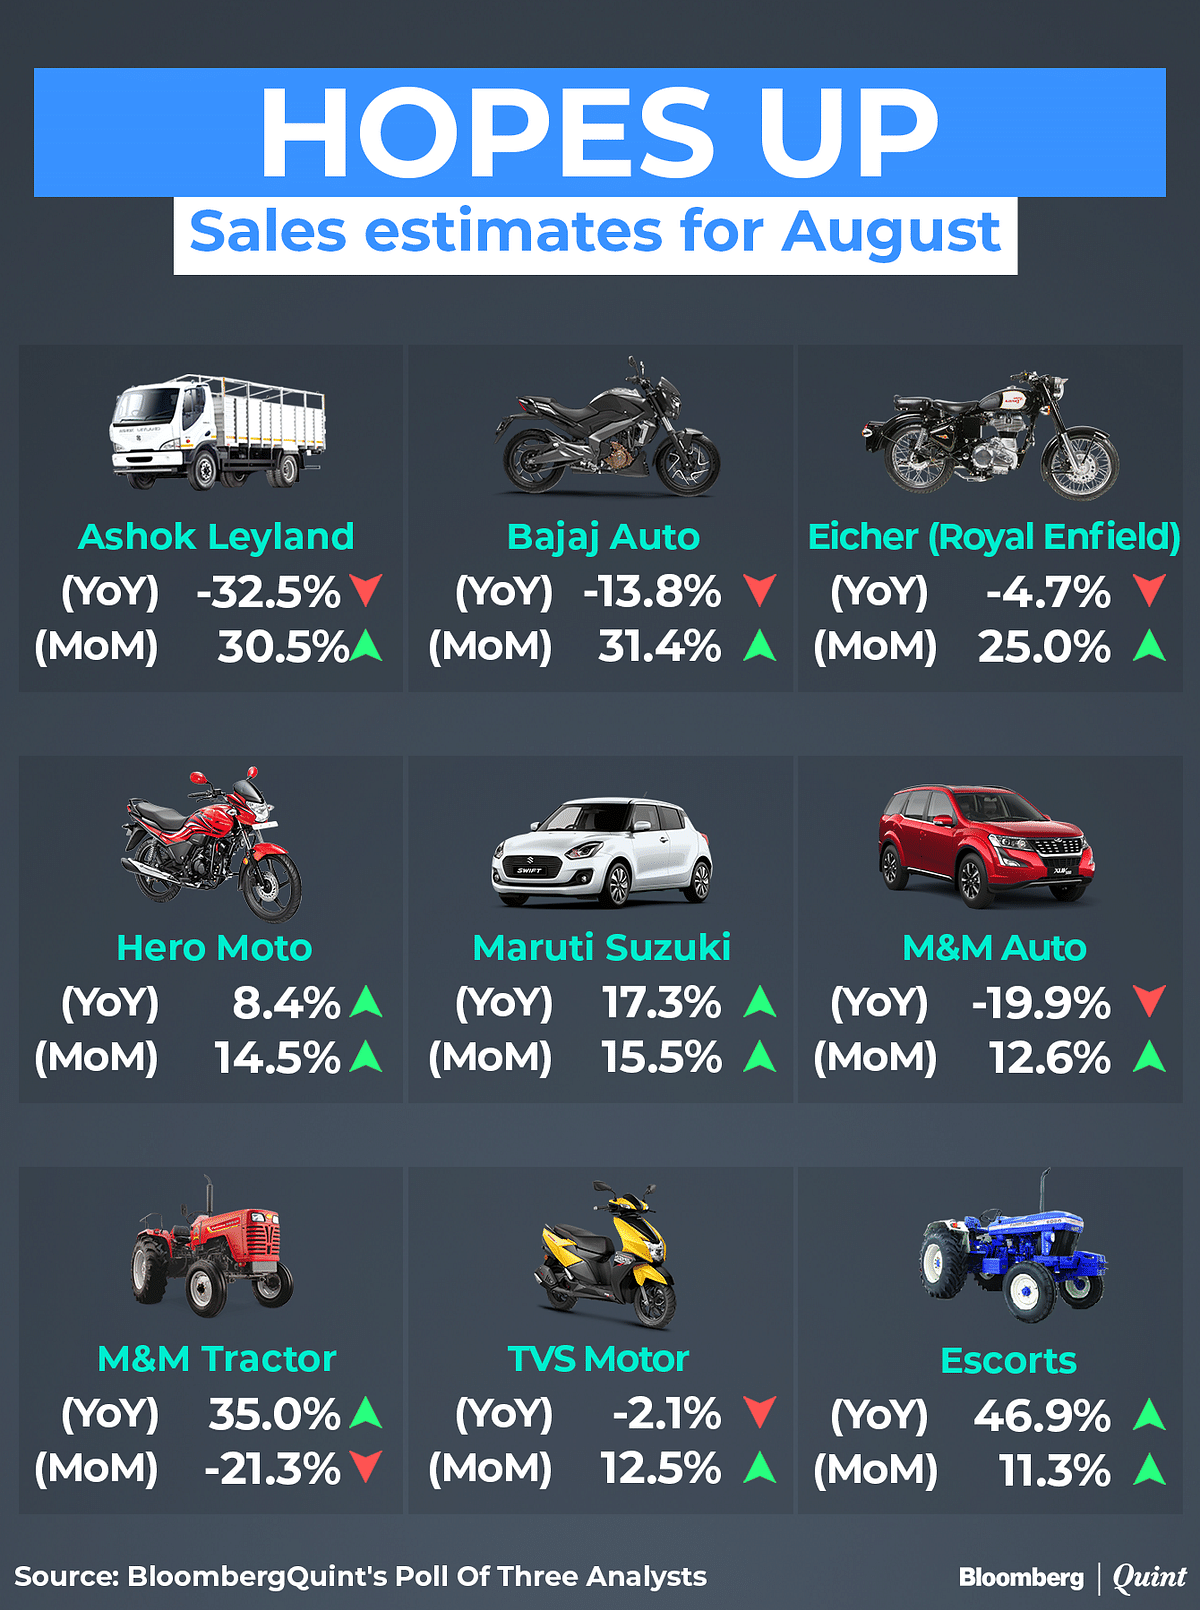 Festive Season Stocking, Easing Supply Chain Likely Aided Auto Sales In August 2020